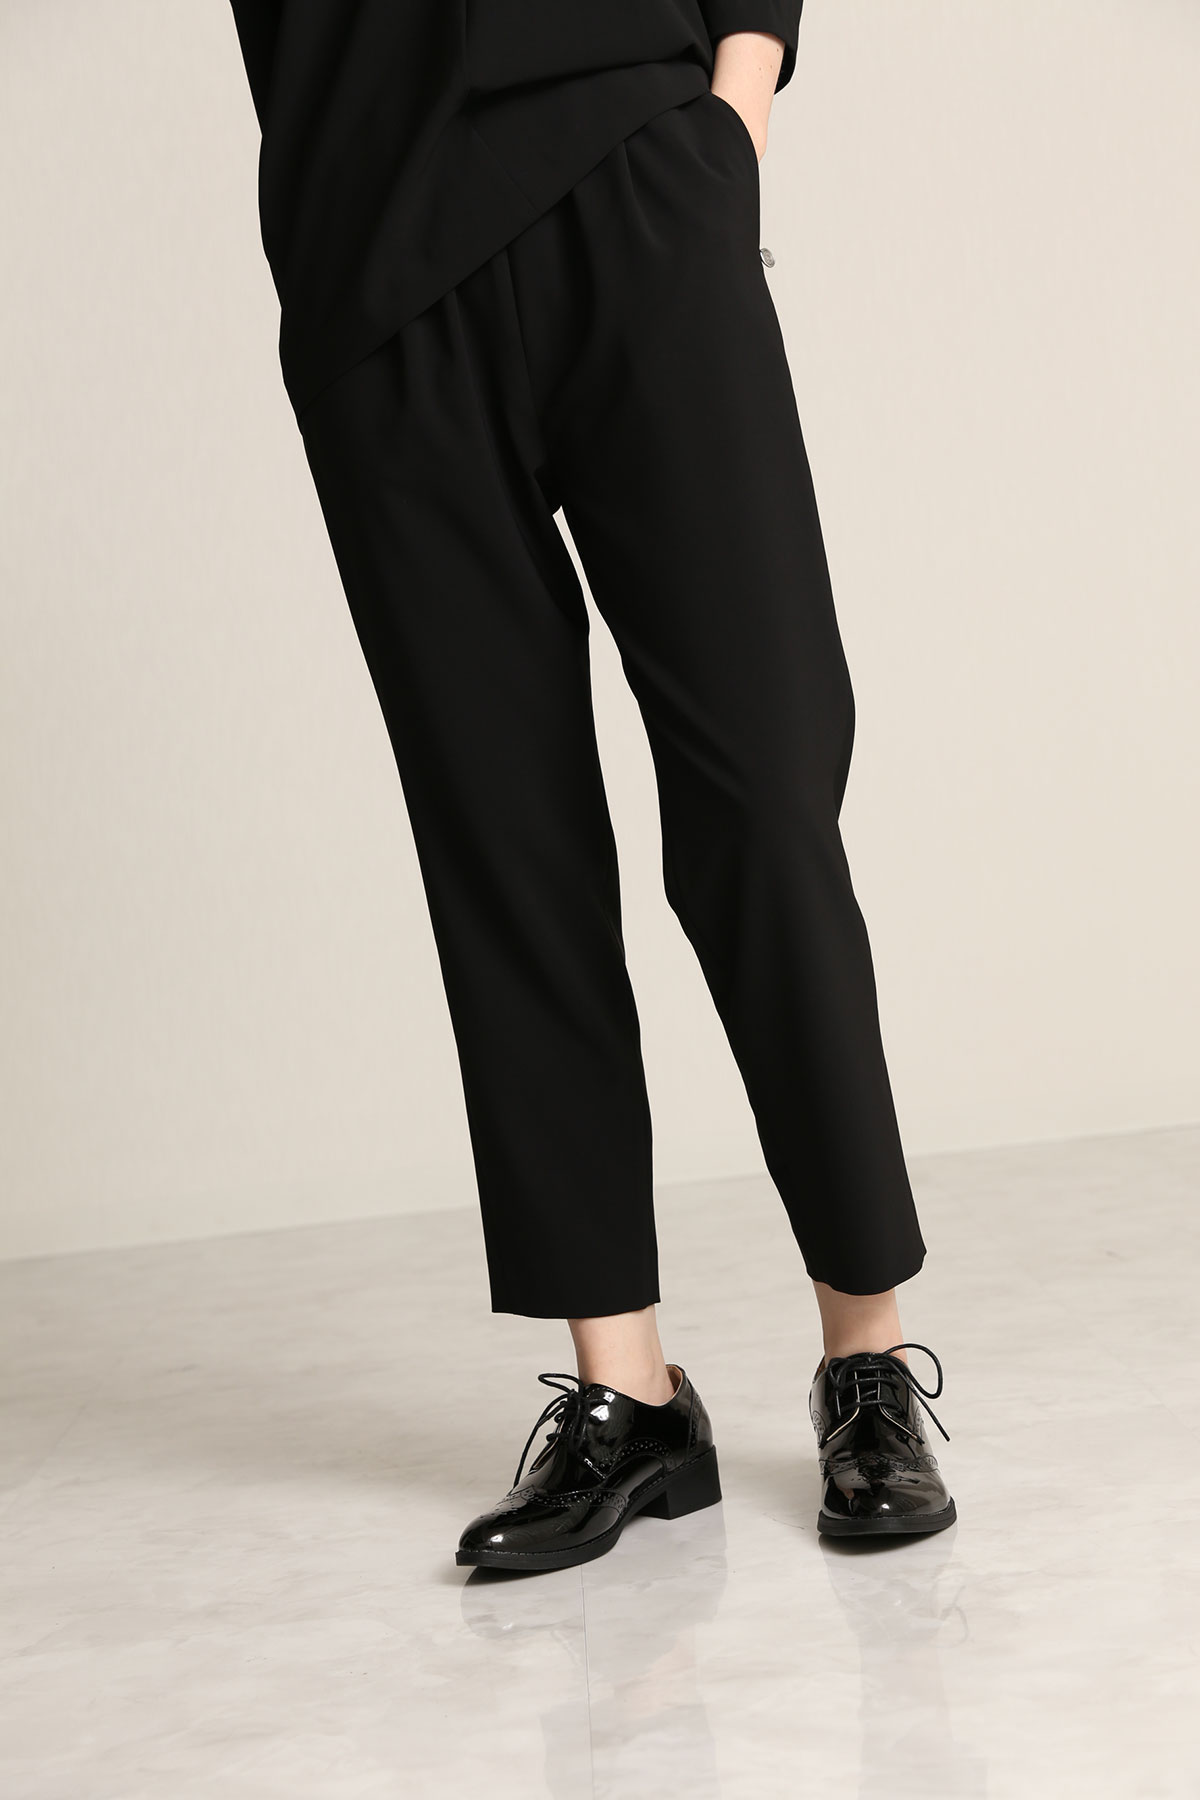 BO21-119P-black 4D Stretch Twill Amphora Pants-BLACK-【BO21-119P】